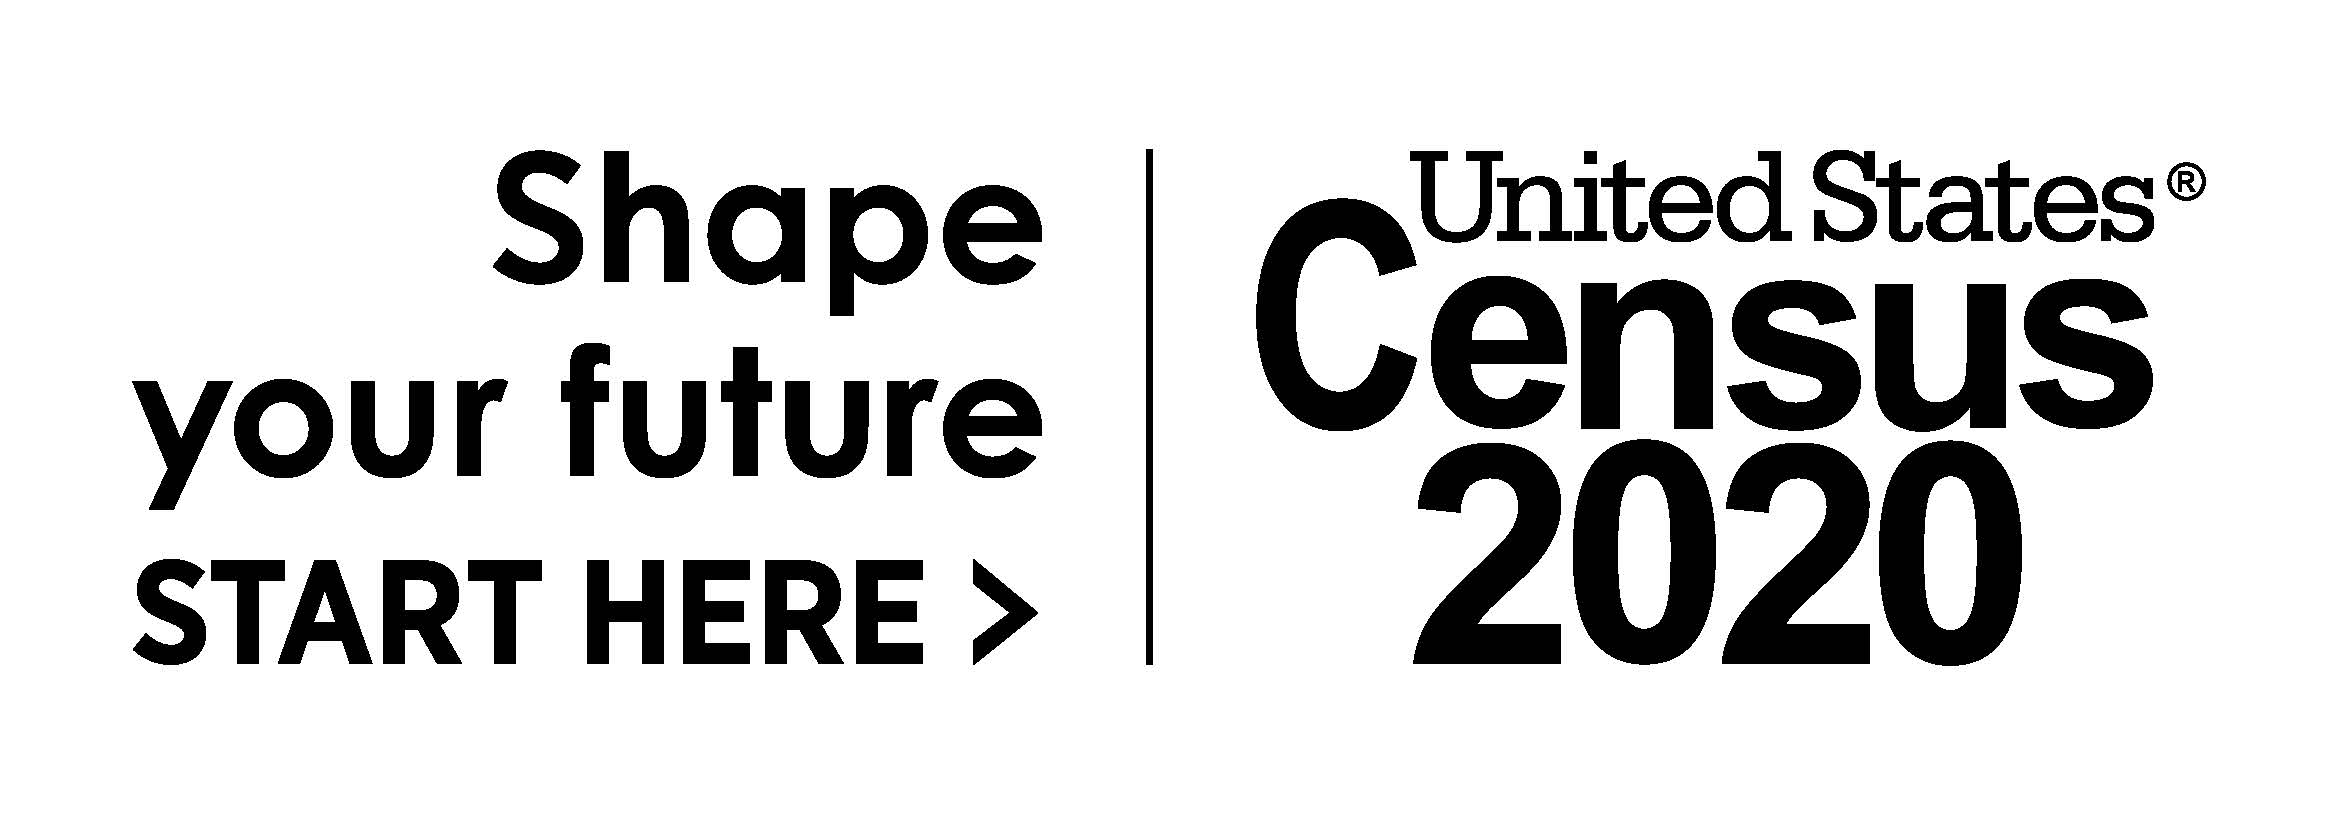 Shape your future, start here: United States Census logo.